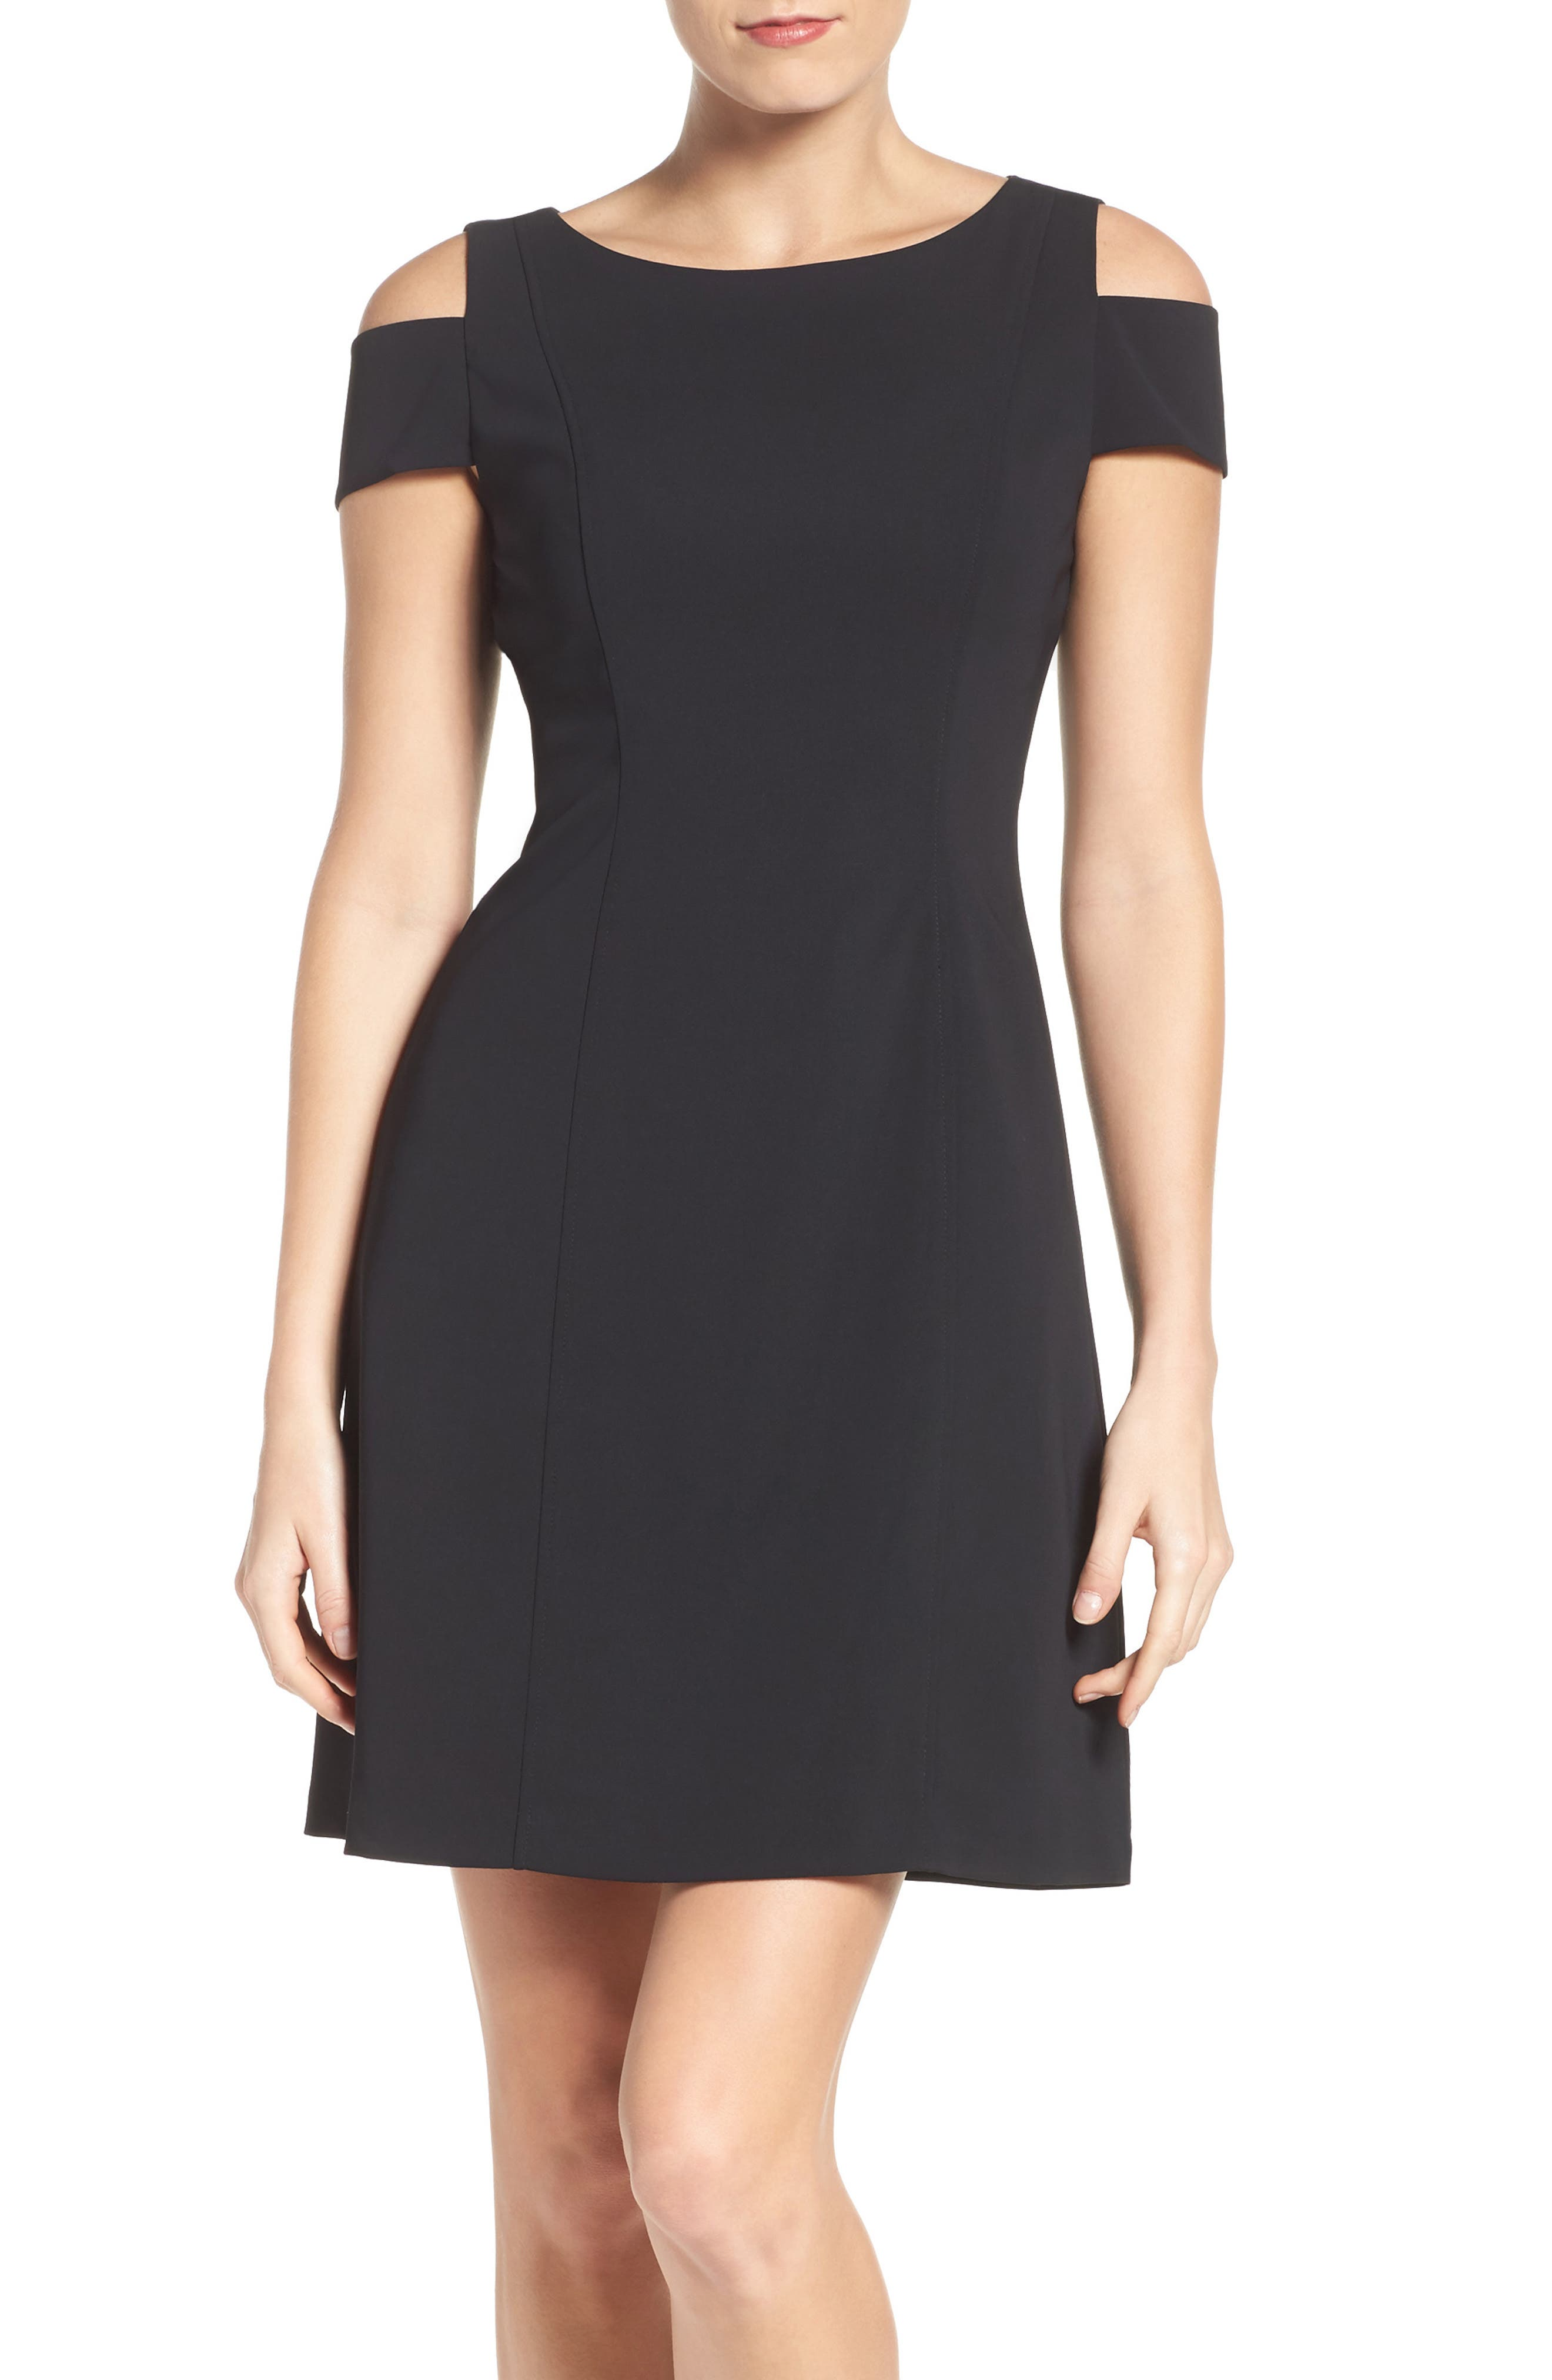 Alternate Image 1 Selected - Adrianna Papell Cold Shoulder Stretch A-Line Dress